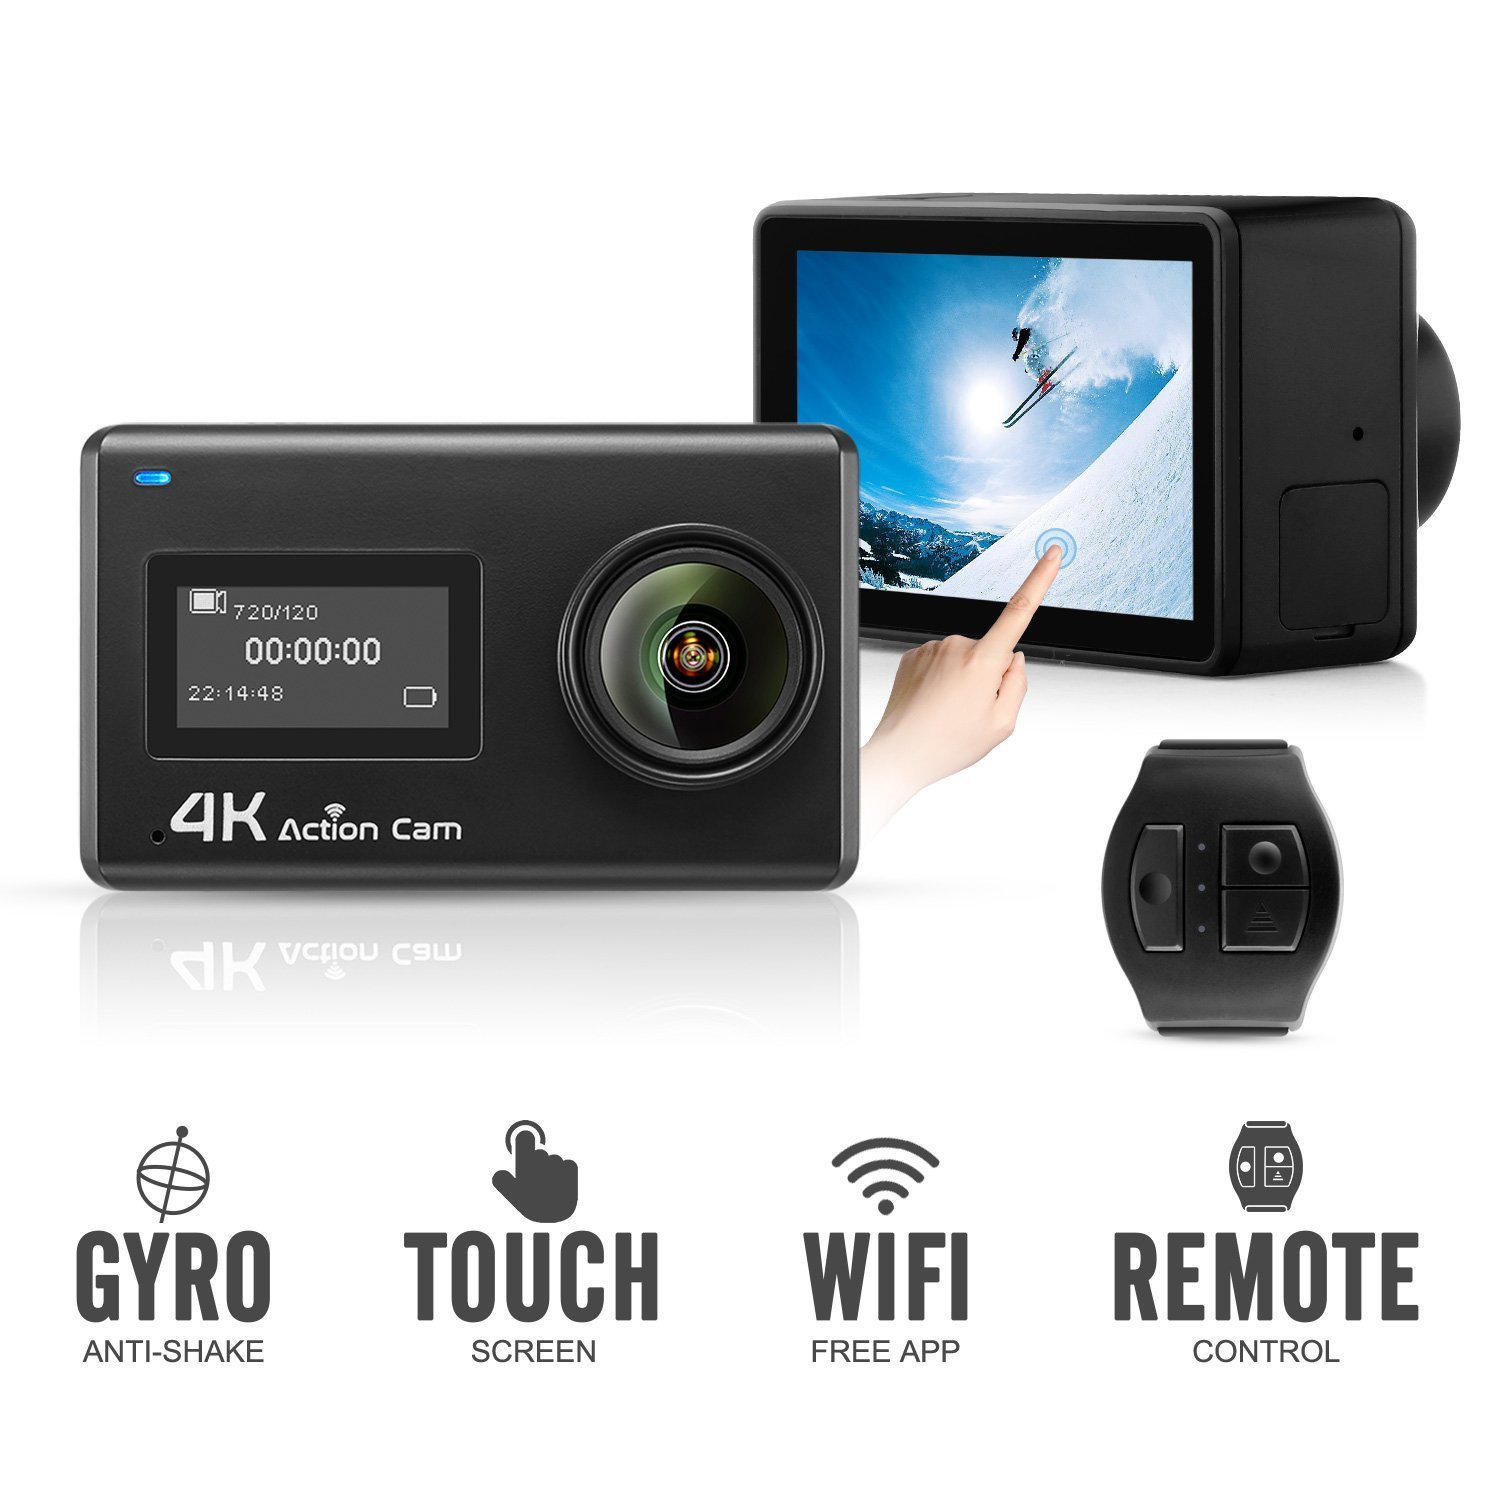 Midonkey i7 Action Camera 4K WiFi Ultra HD Waterproof Sport Camera 2 Inch LCD Screen 12MP 170 Degree Wide Angle 2 Rechargeable 1050mAh Batteries Free Travel Bag Include 19 Accessories Kits